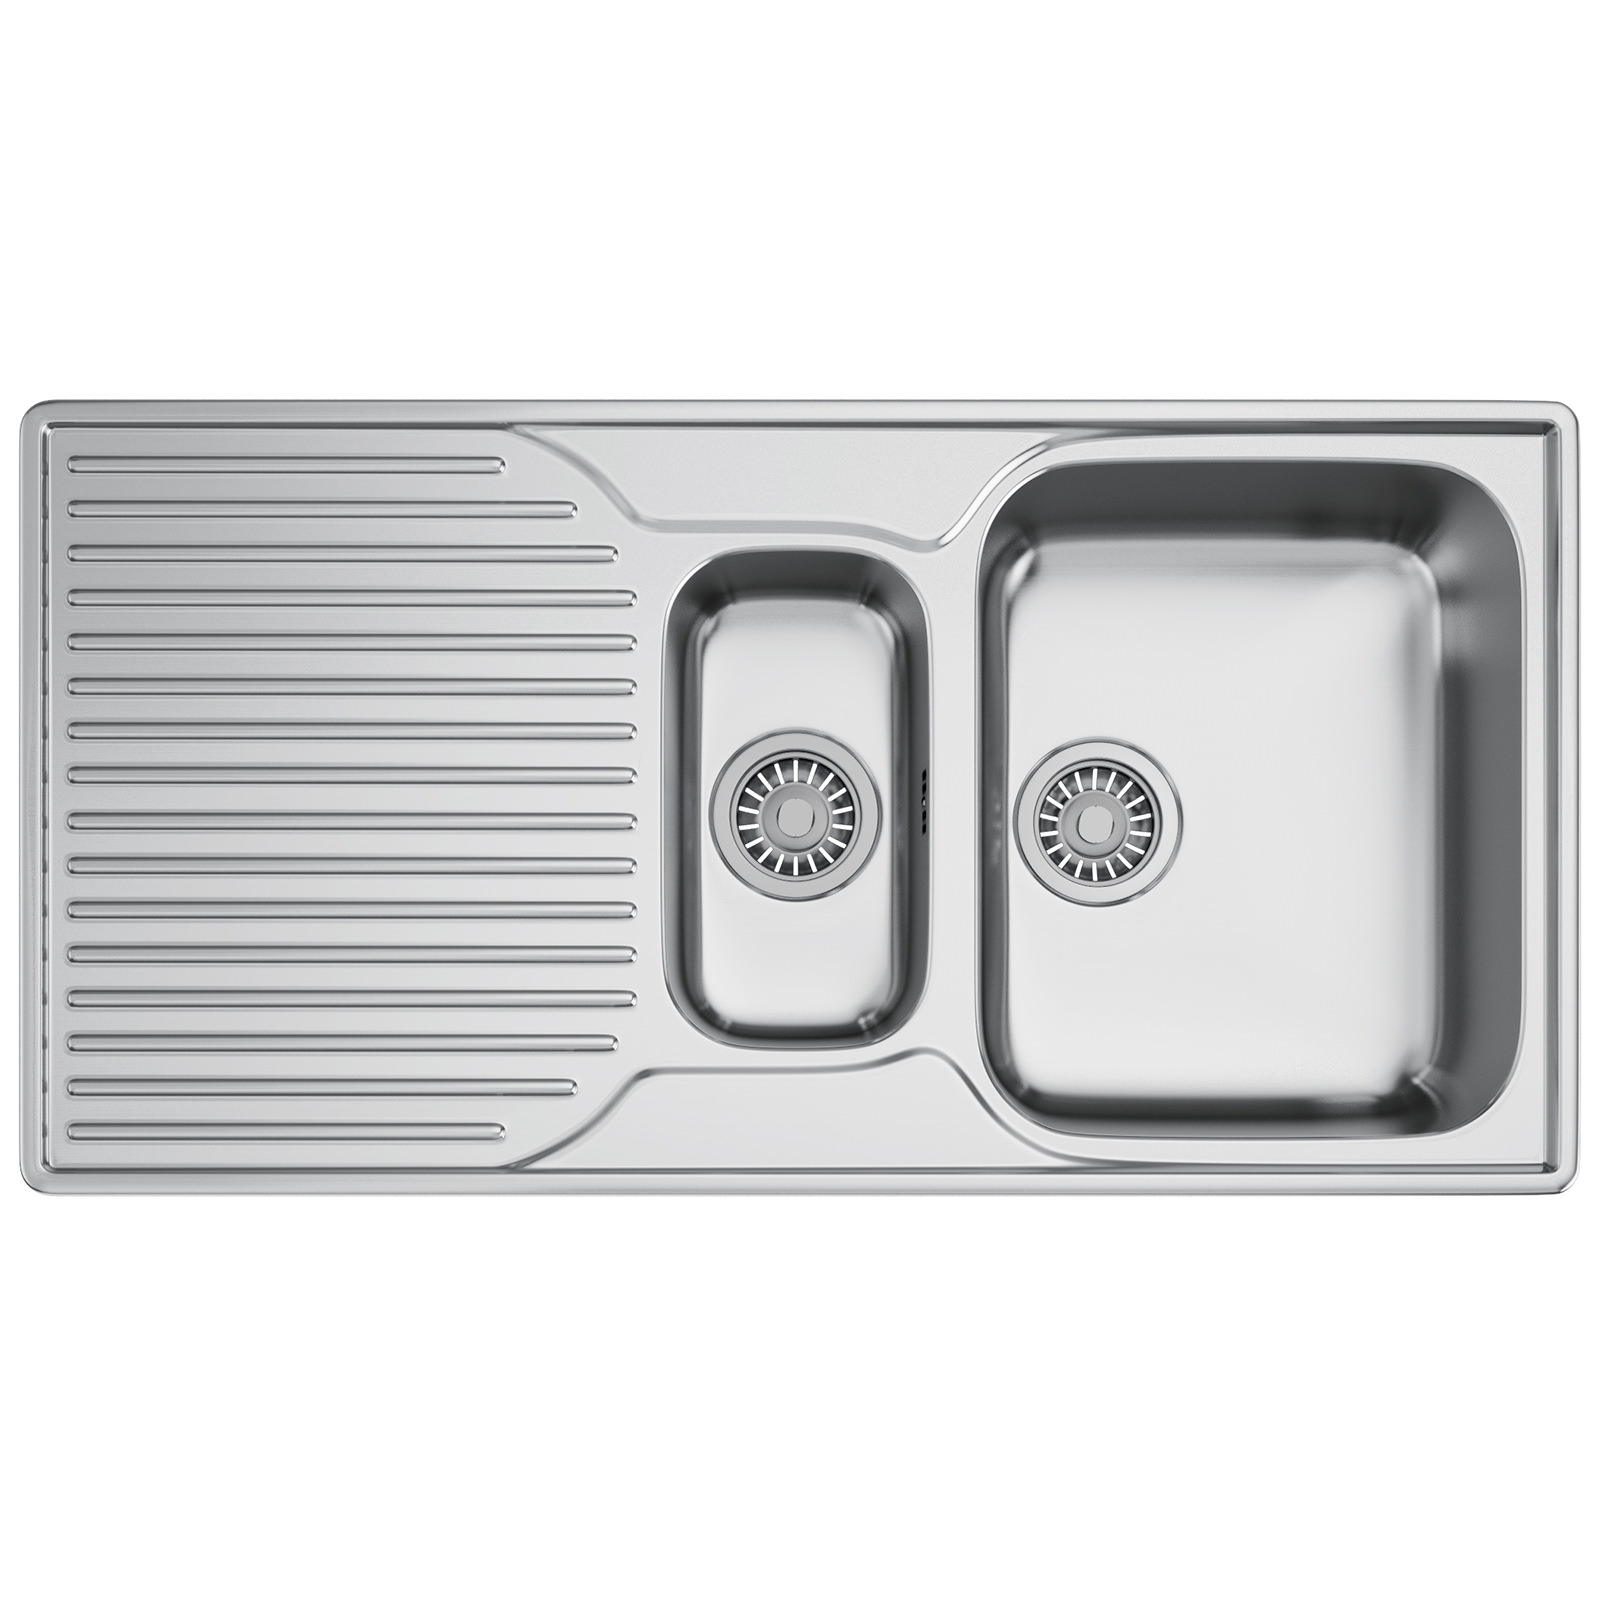 Franke Inset Sink : Franke Ariane ARX 651P Stainless Steel 1.5 Bowl Inset Sink 101.0277 ...